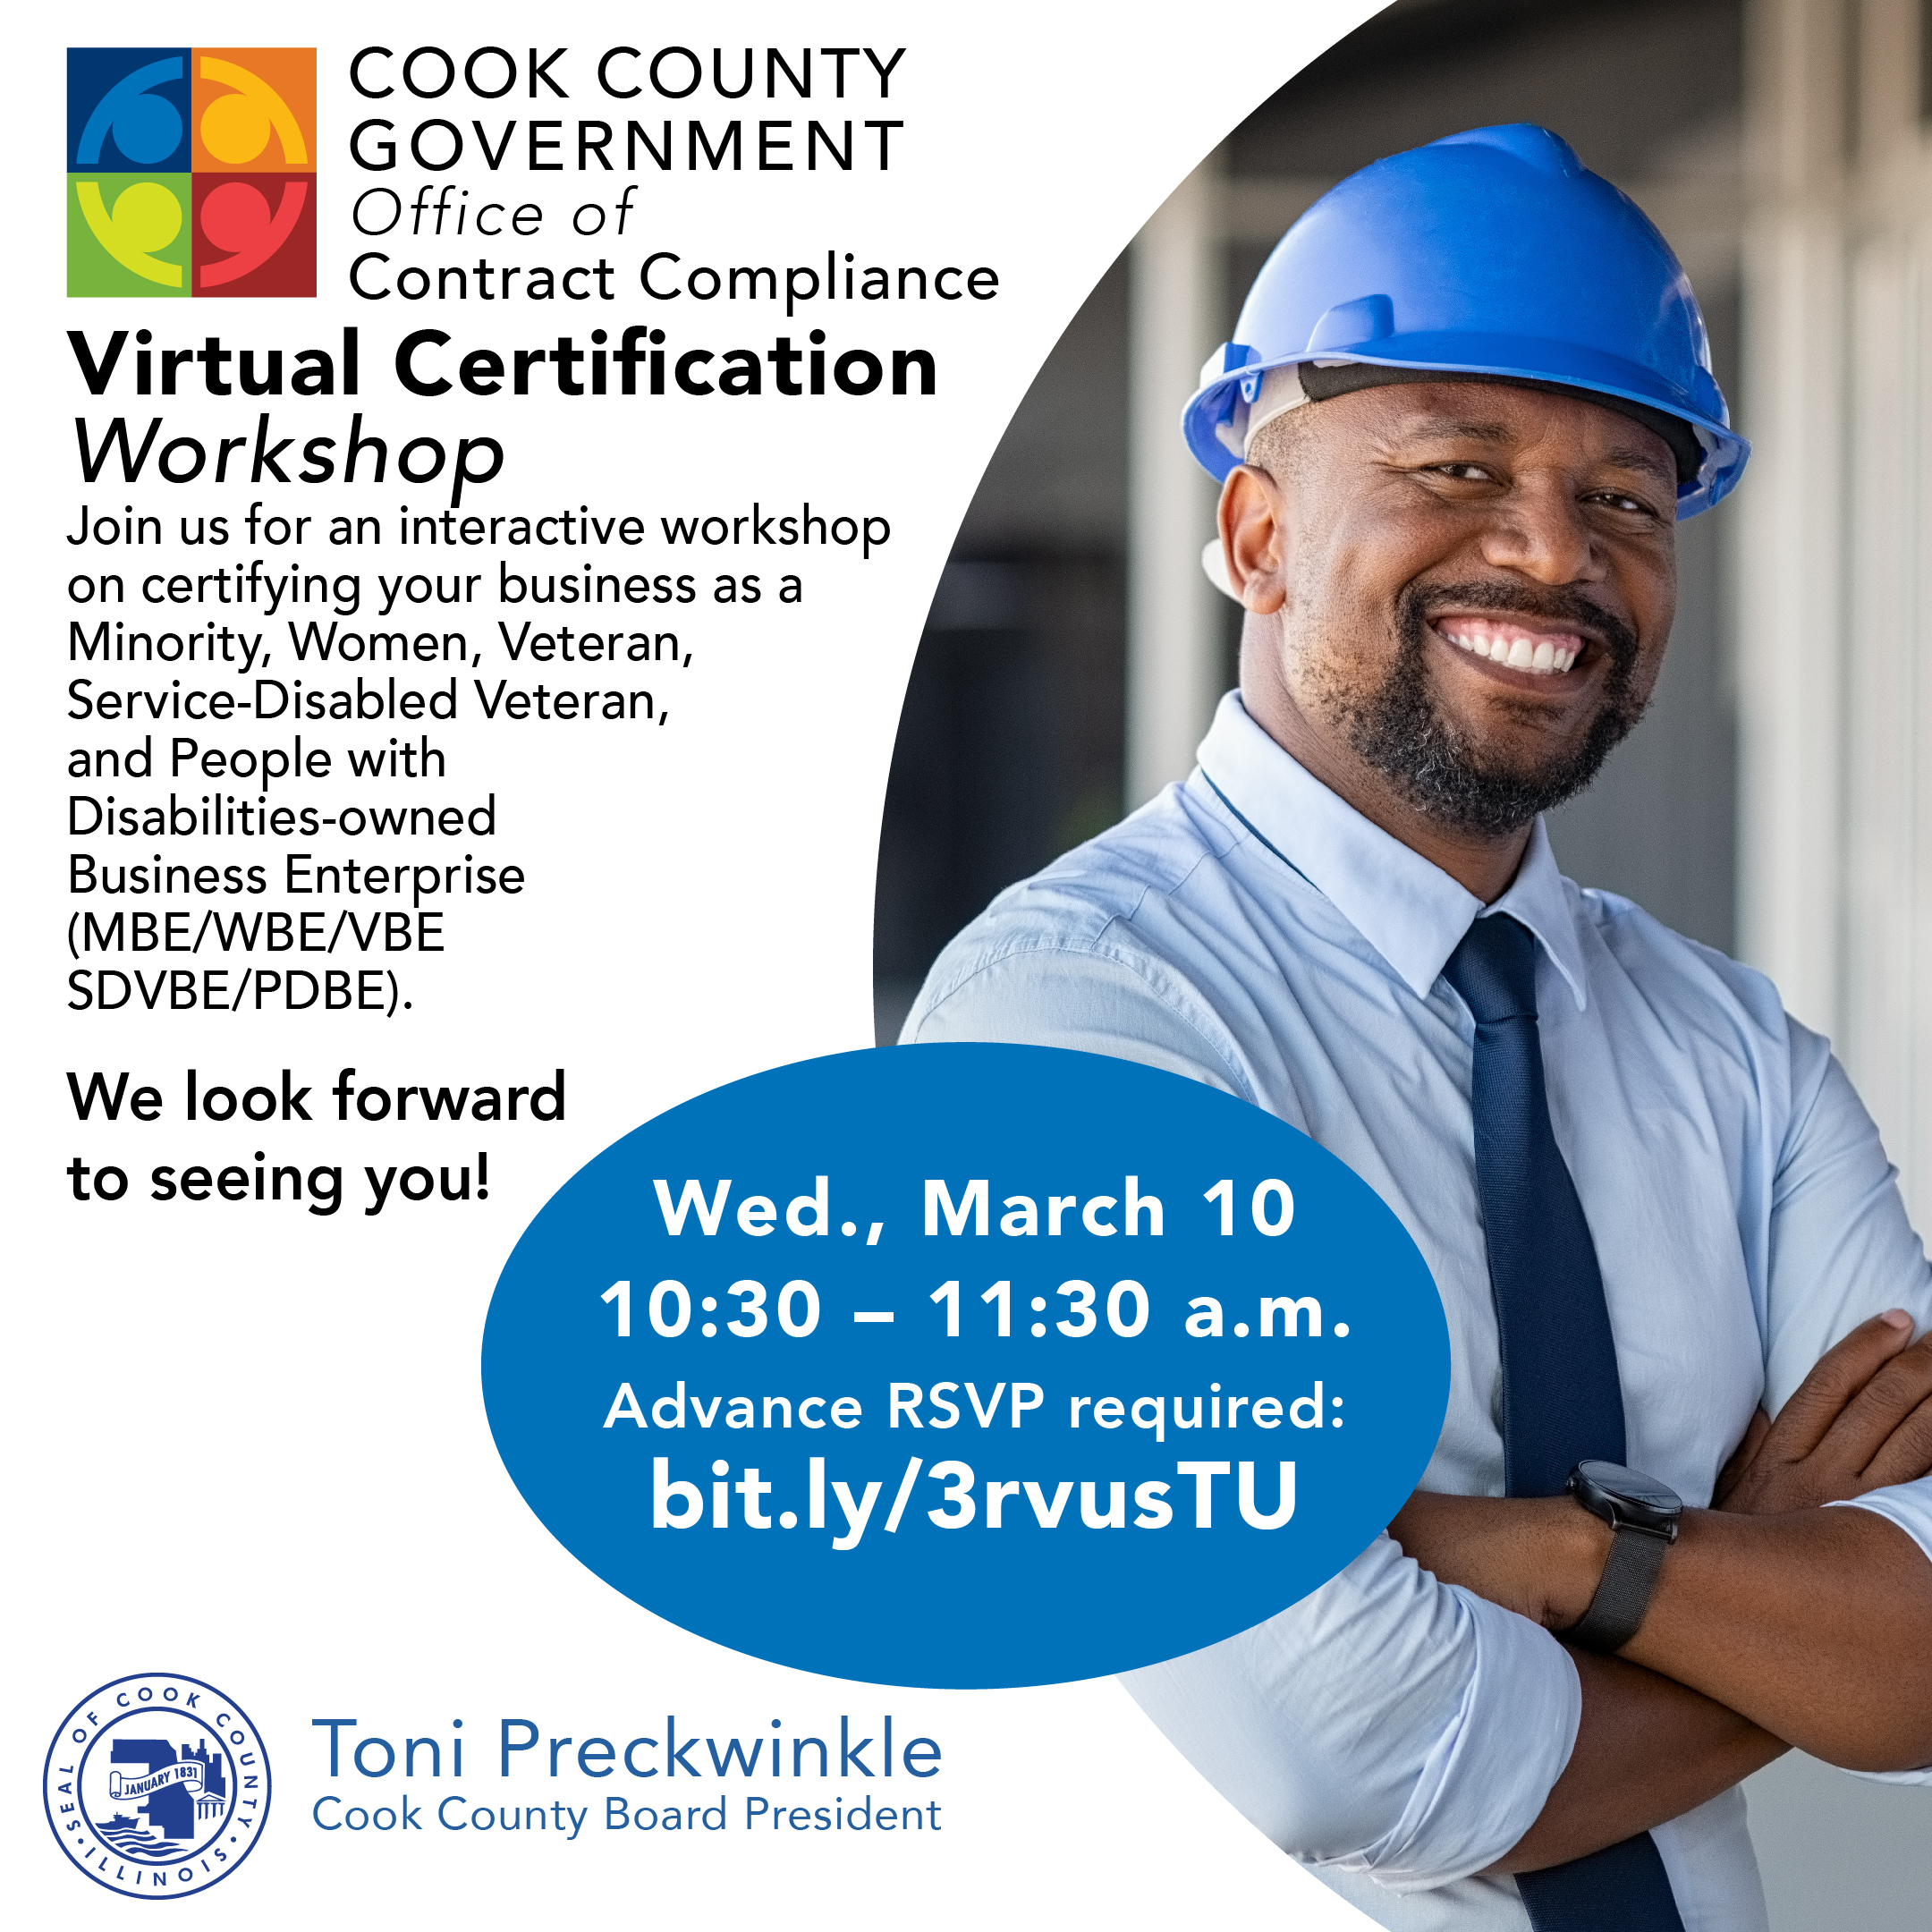 Cook County Virtual Certification Workshop